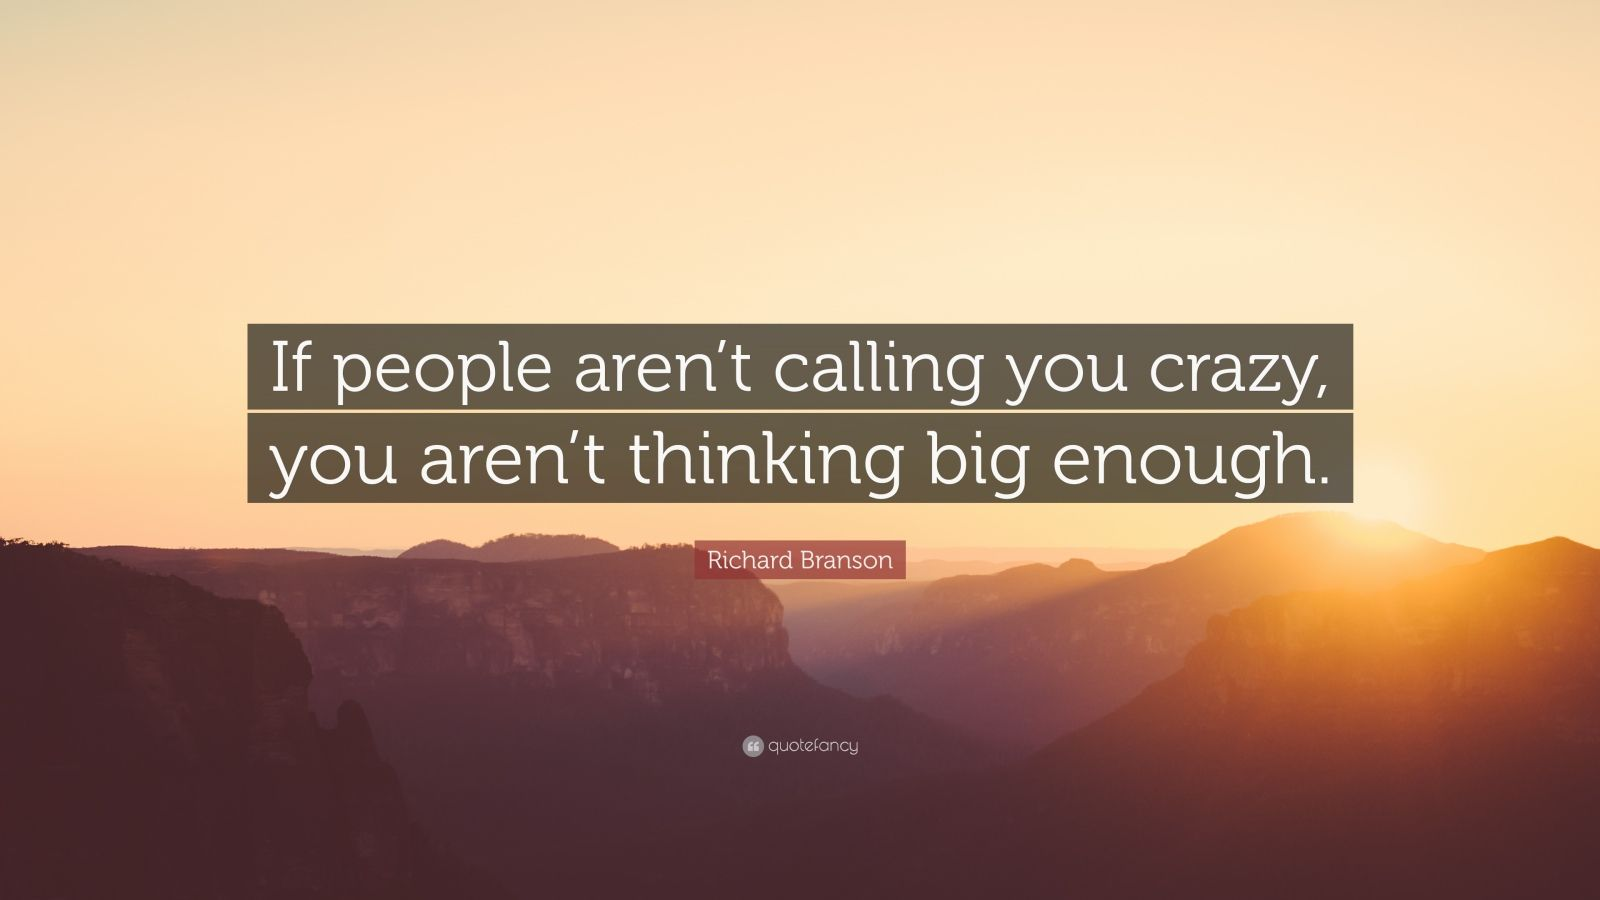 """Richard Branson Quote: """"If people aren't calling you crazy, you aren't thinking big enough."""""""